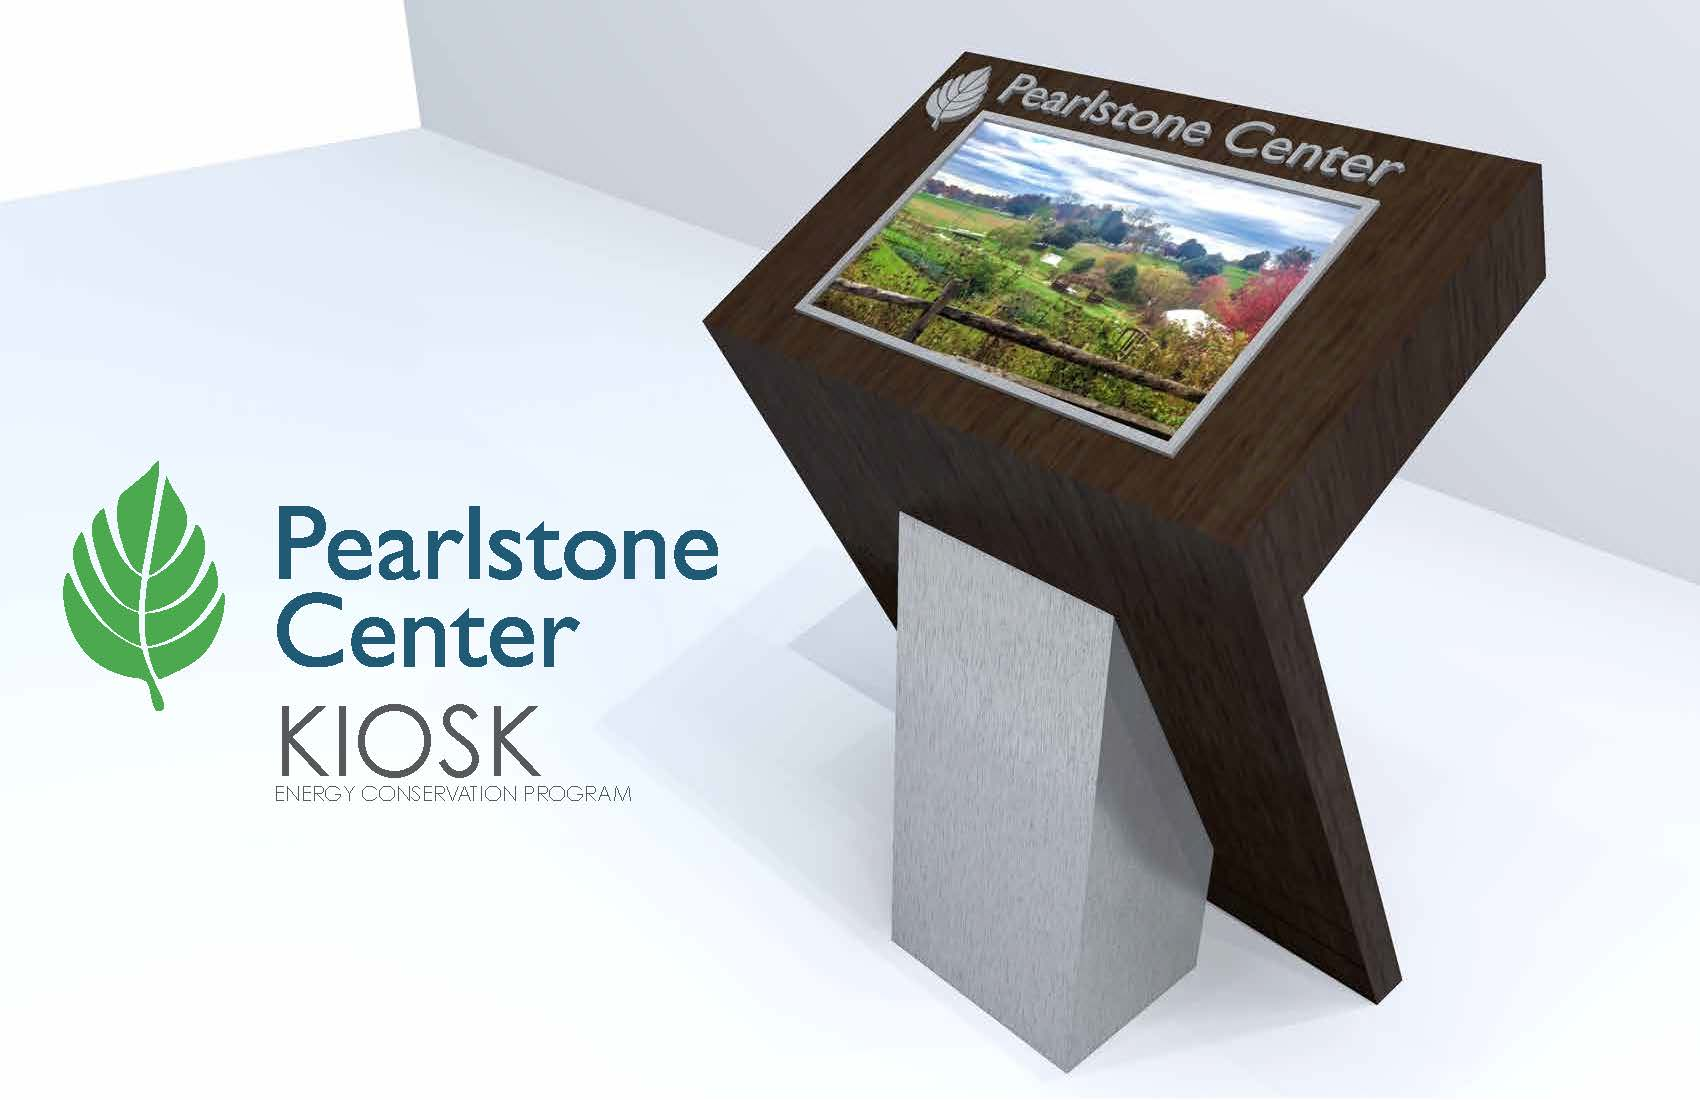 Pearlstone Conference Center 31456v2_Page_1.jpg